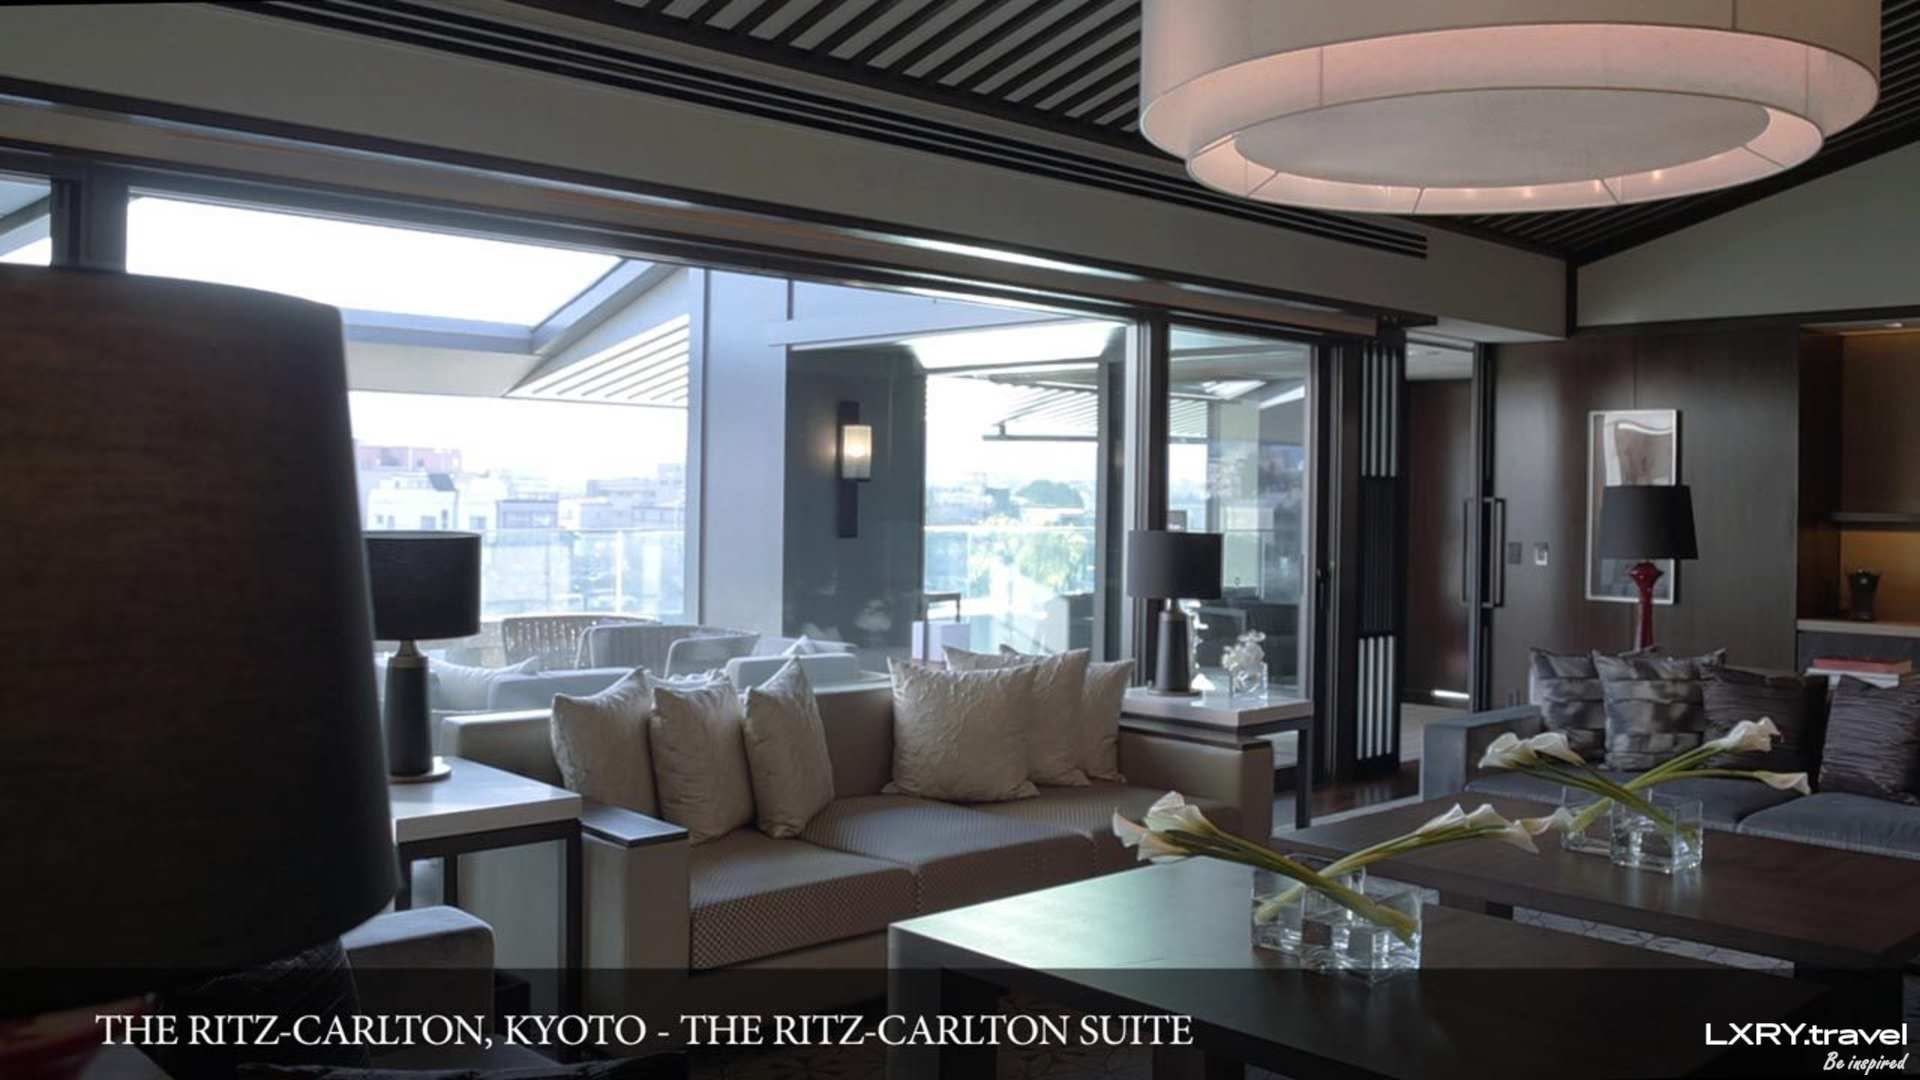 The Ritz-Carlton, Kyoto 68/68